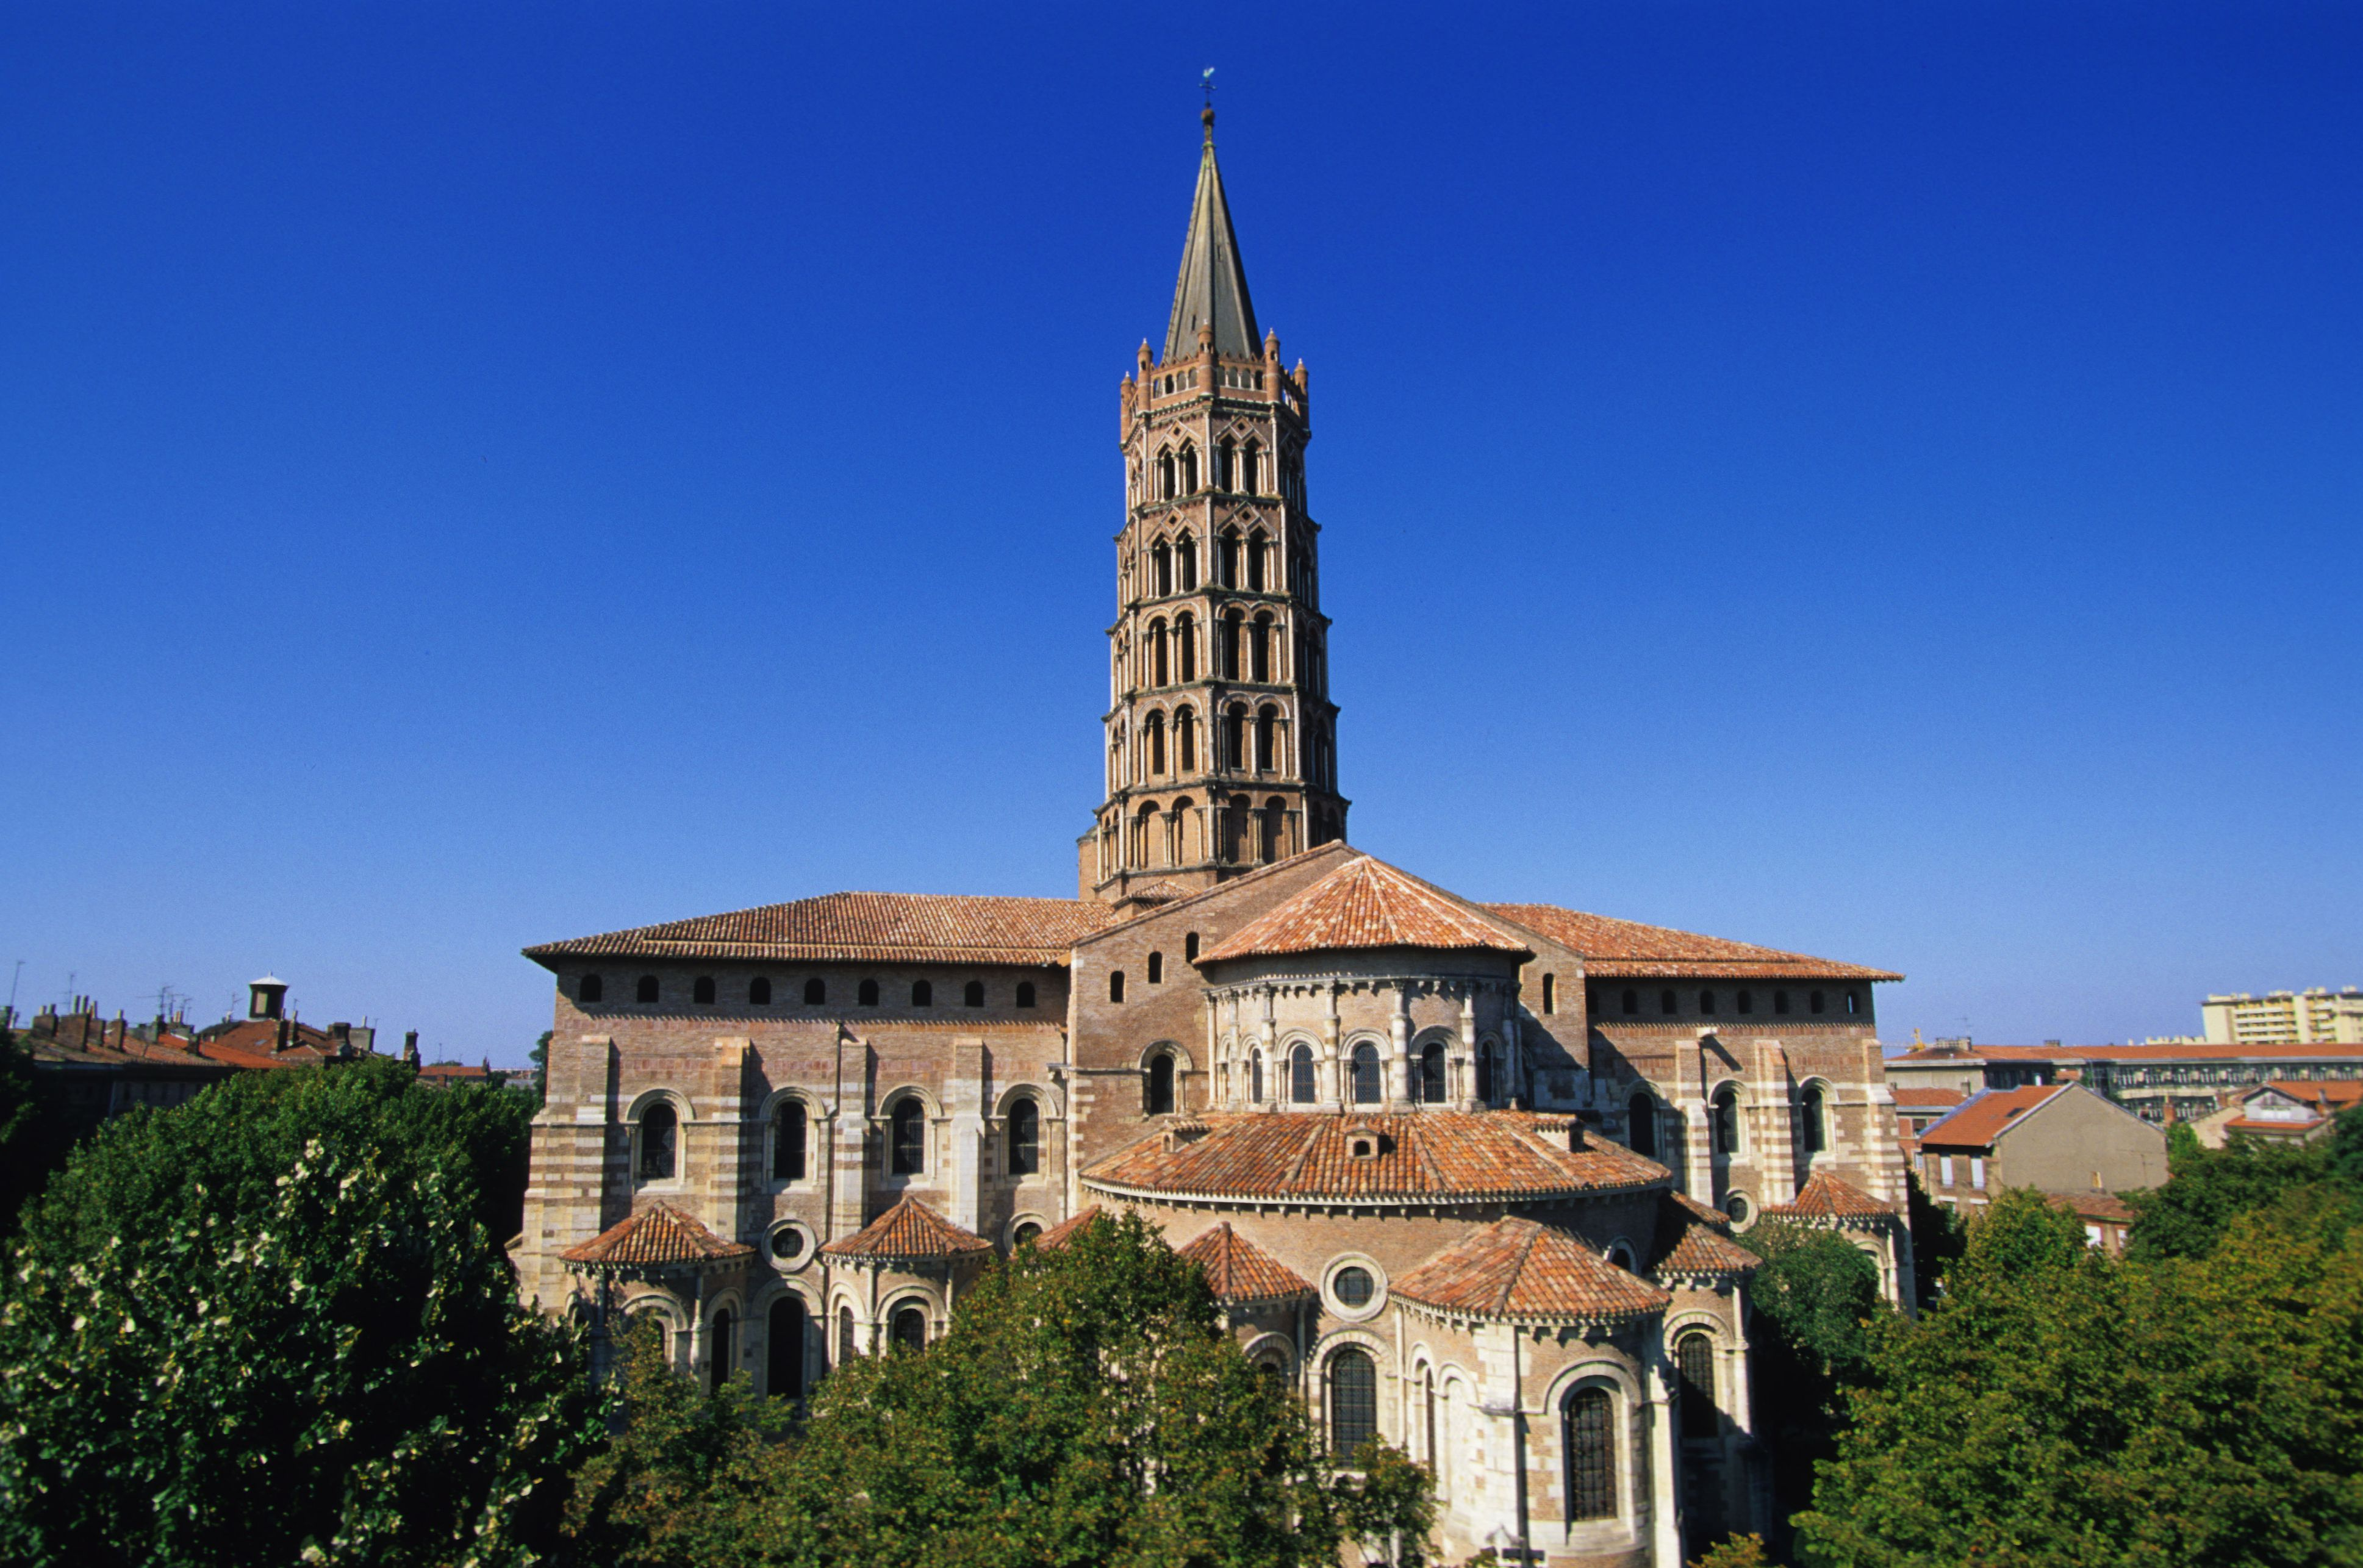 Rounded arches, massive walls, tower of the Basilica of St. Sernin (1070-1120) in Toulouse, France